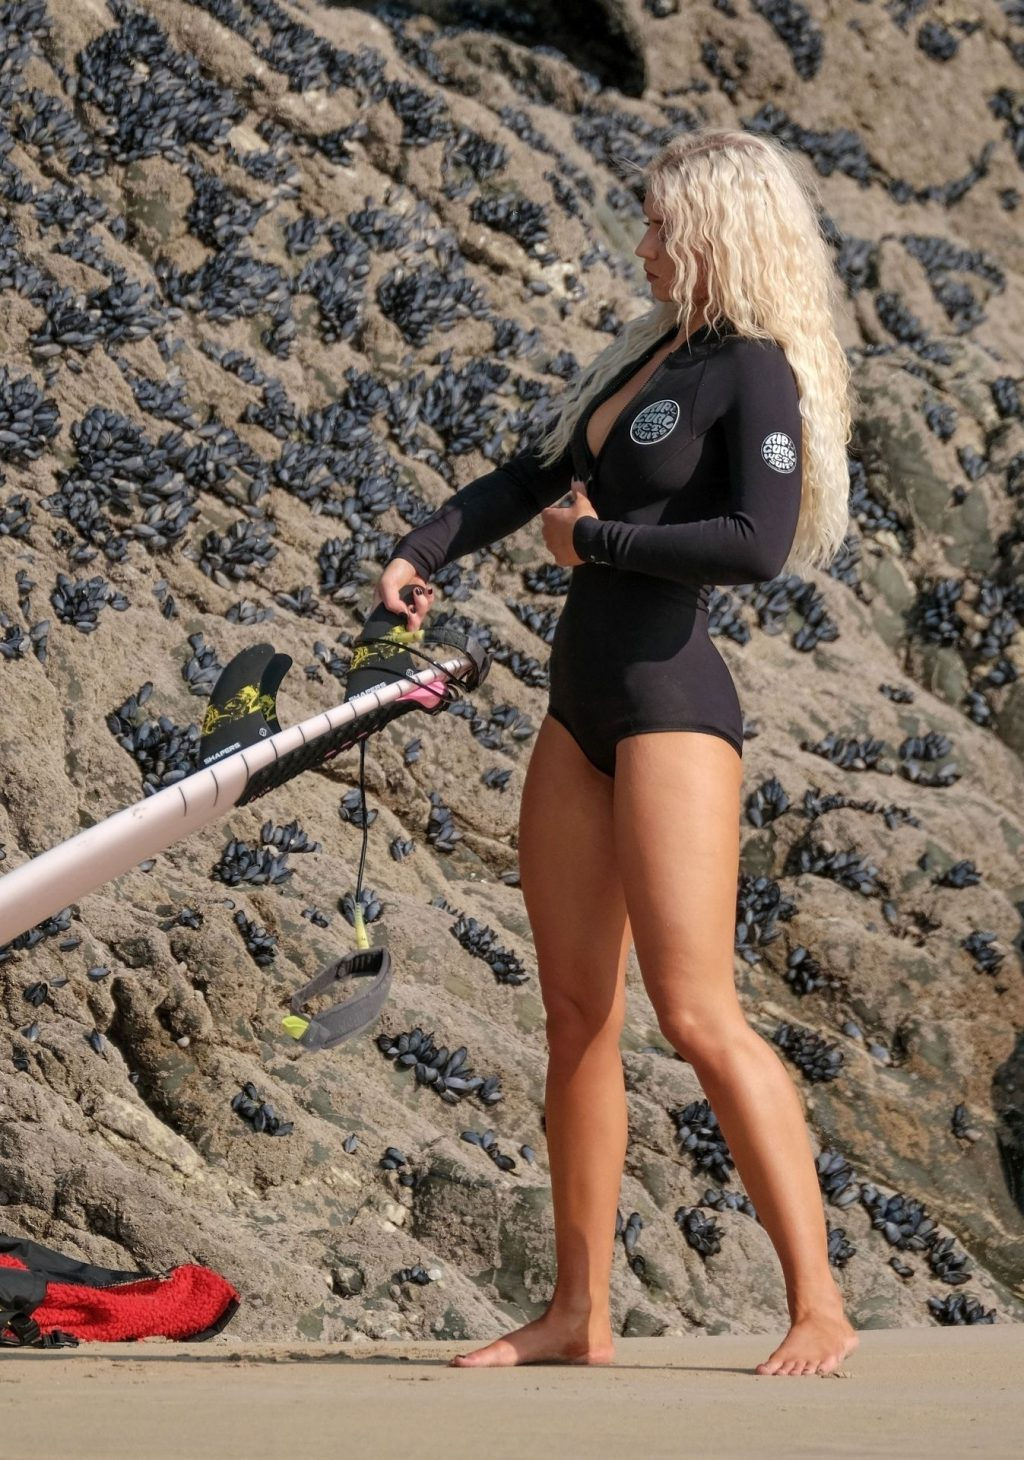 Lucie Donlan Looks Amazing in Her Black Wet Swimsuit on the Beach (30 Photos)